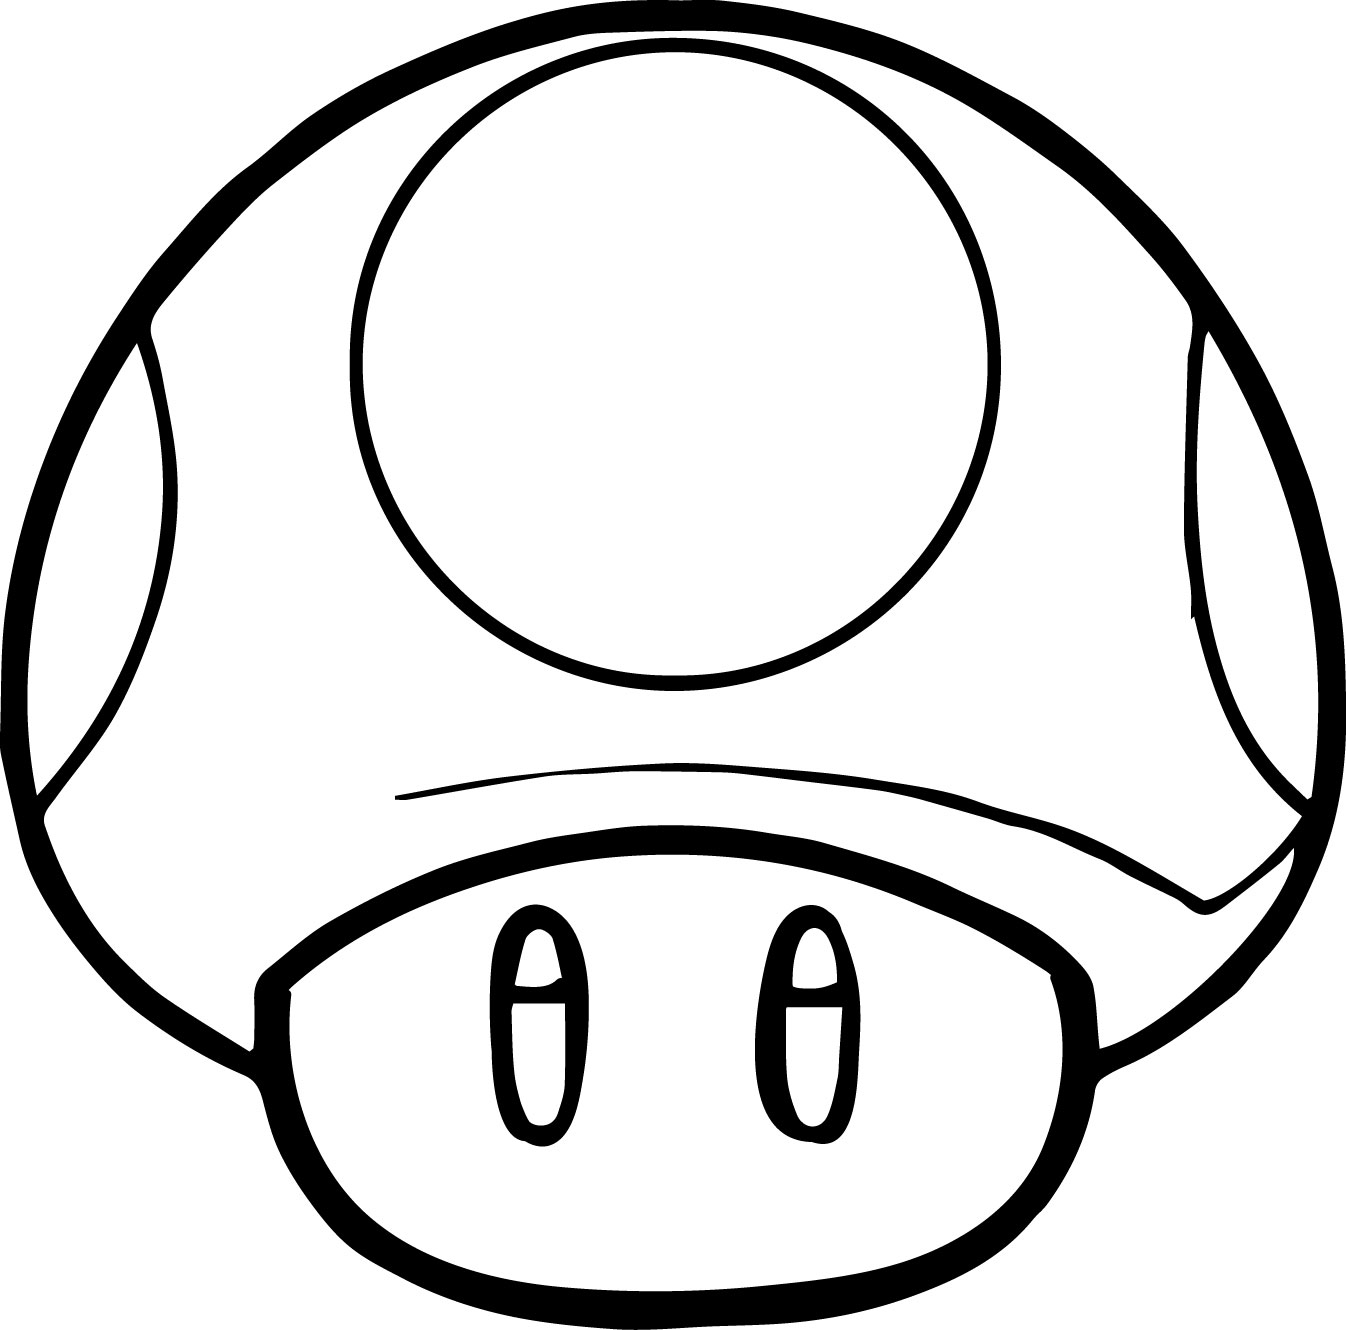 Mario Coloring Pages Mushroom Coloringstar Printable Of Super Mario Bros Coloring Pages to Print